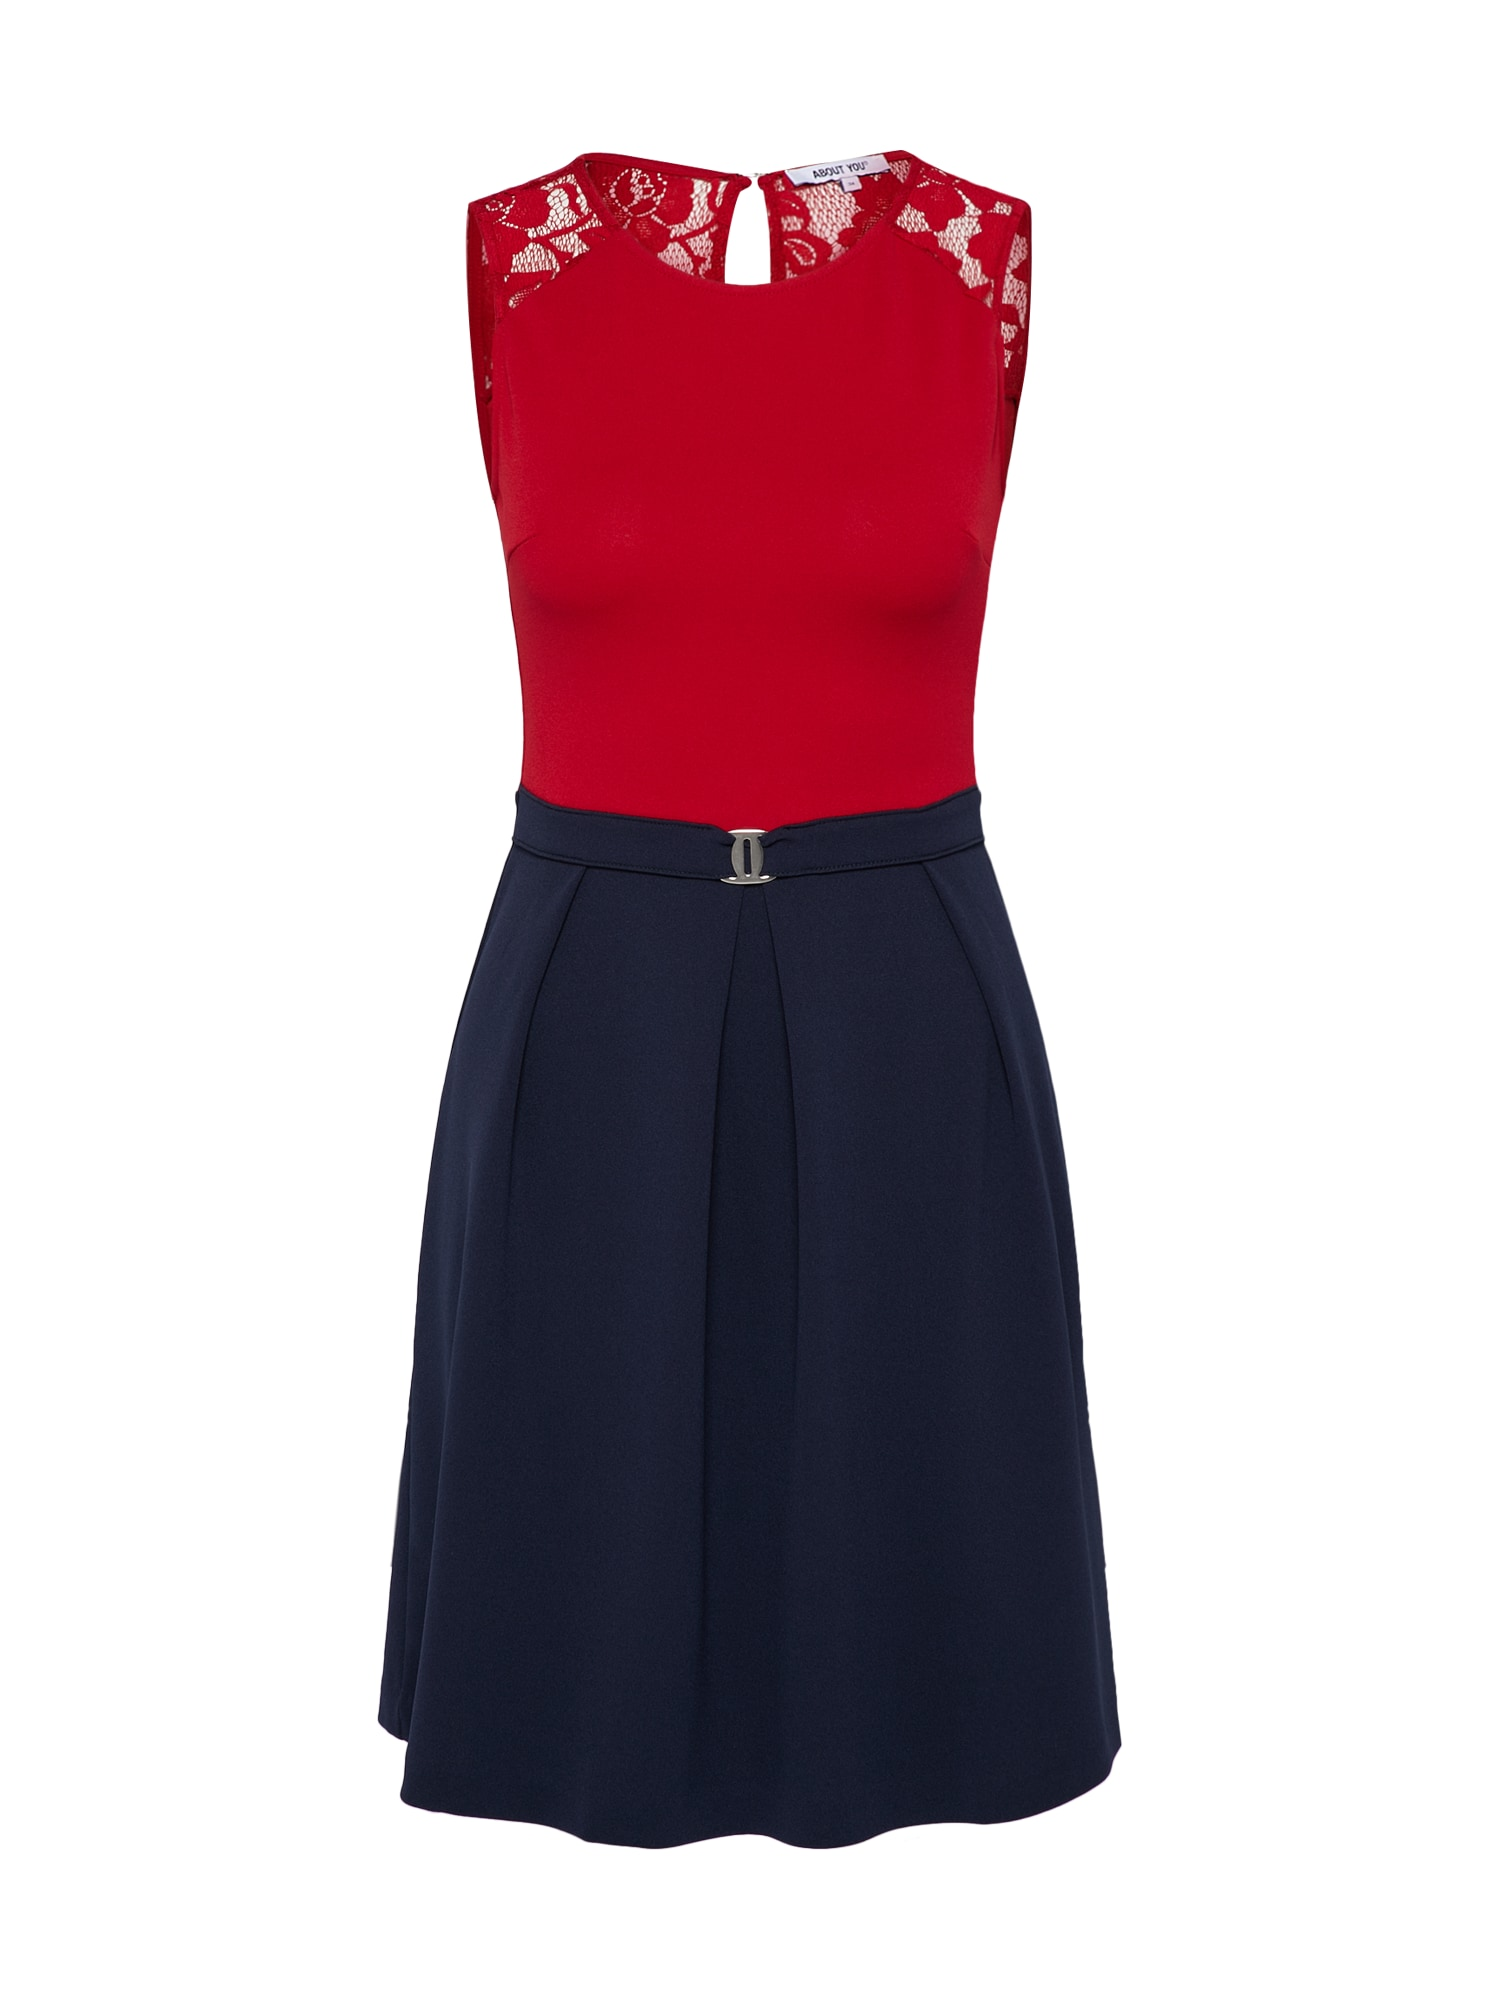 ABOUT YOU Jurk 'Lucille' blauw / rood